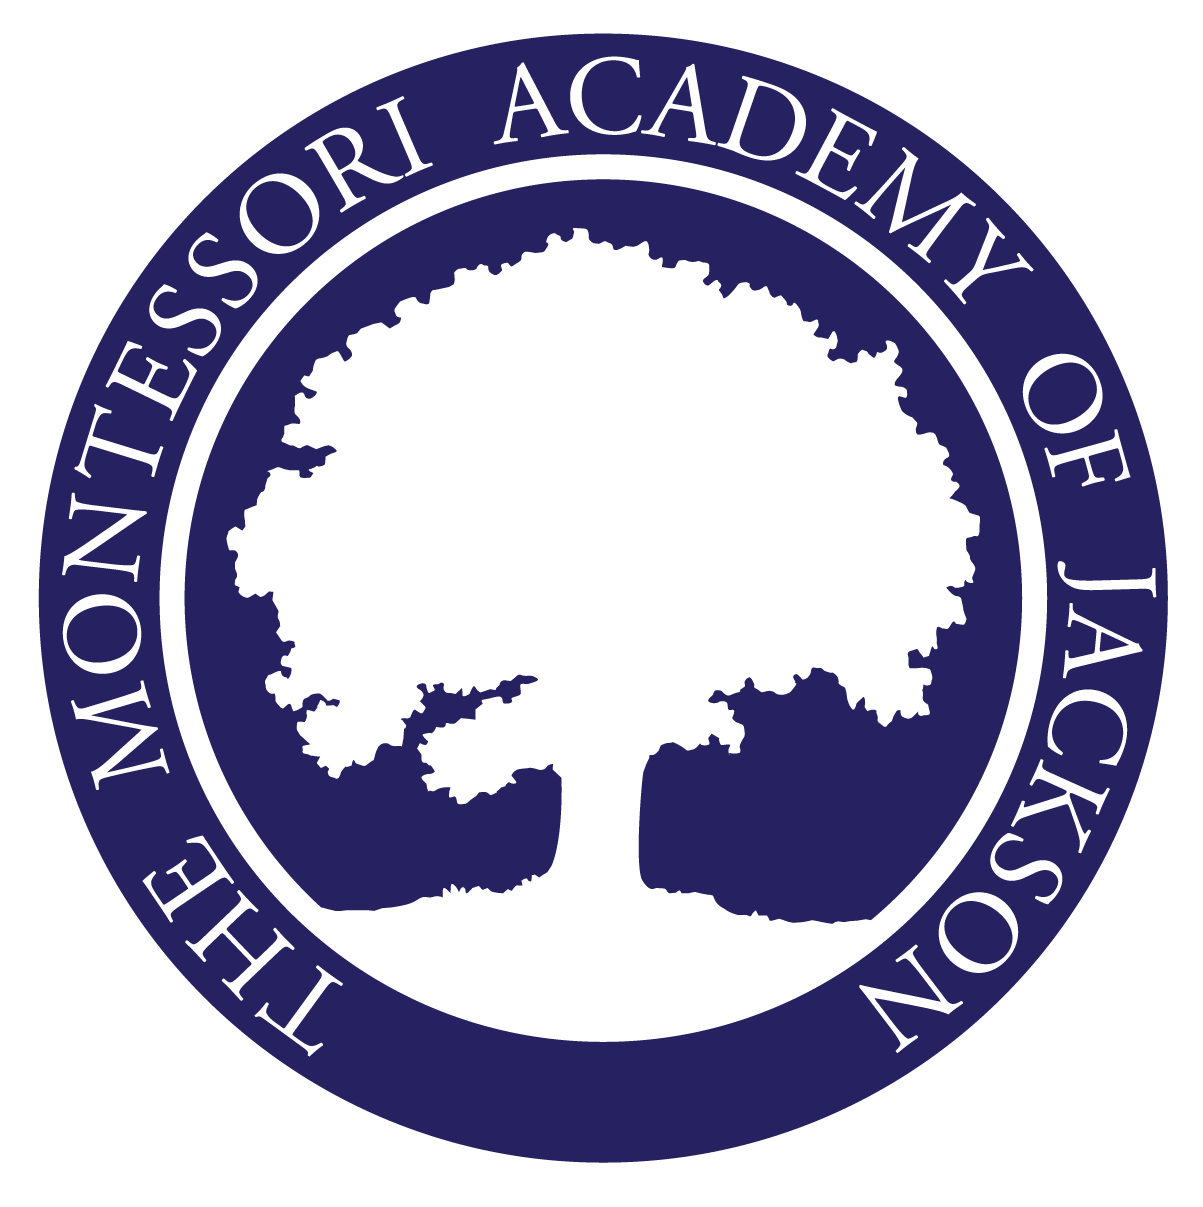 The Montessori Academy of Jackson